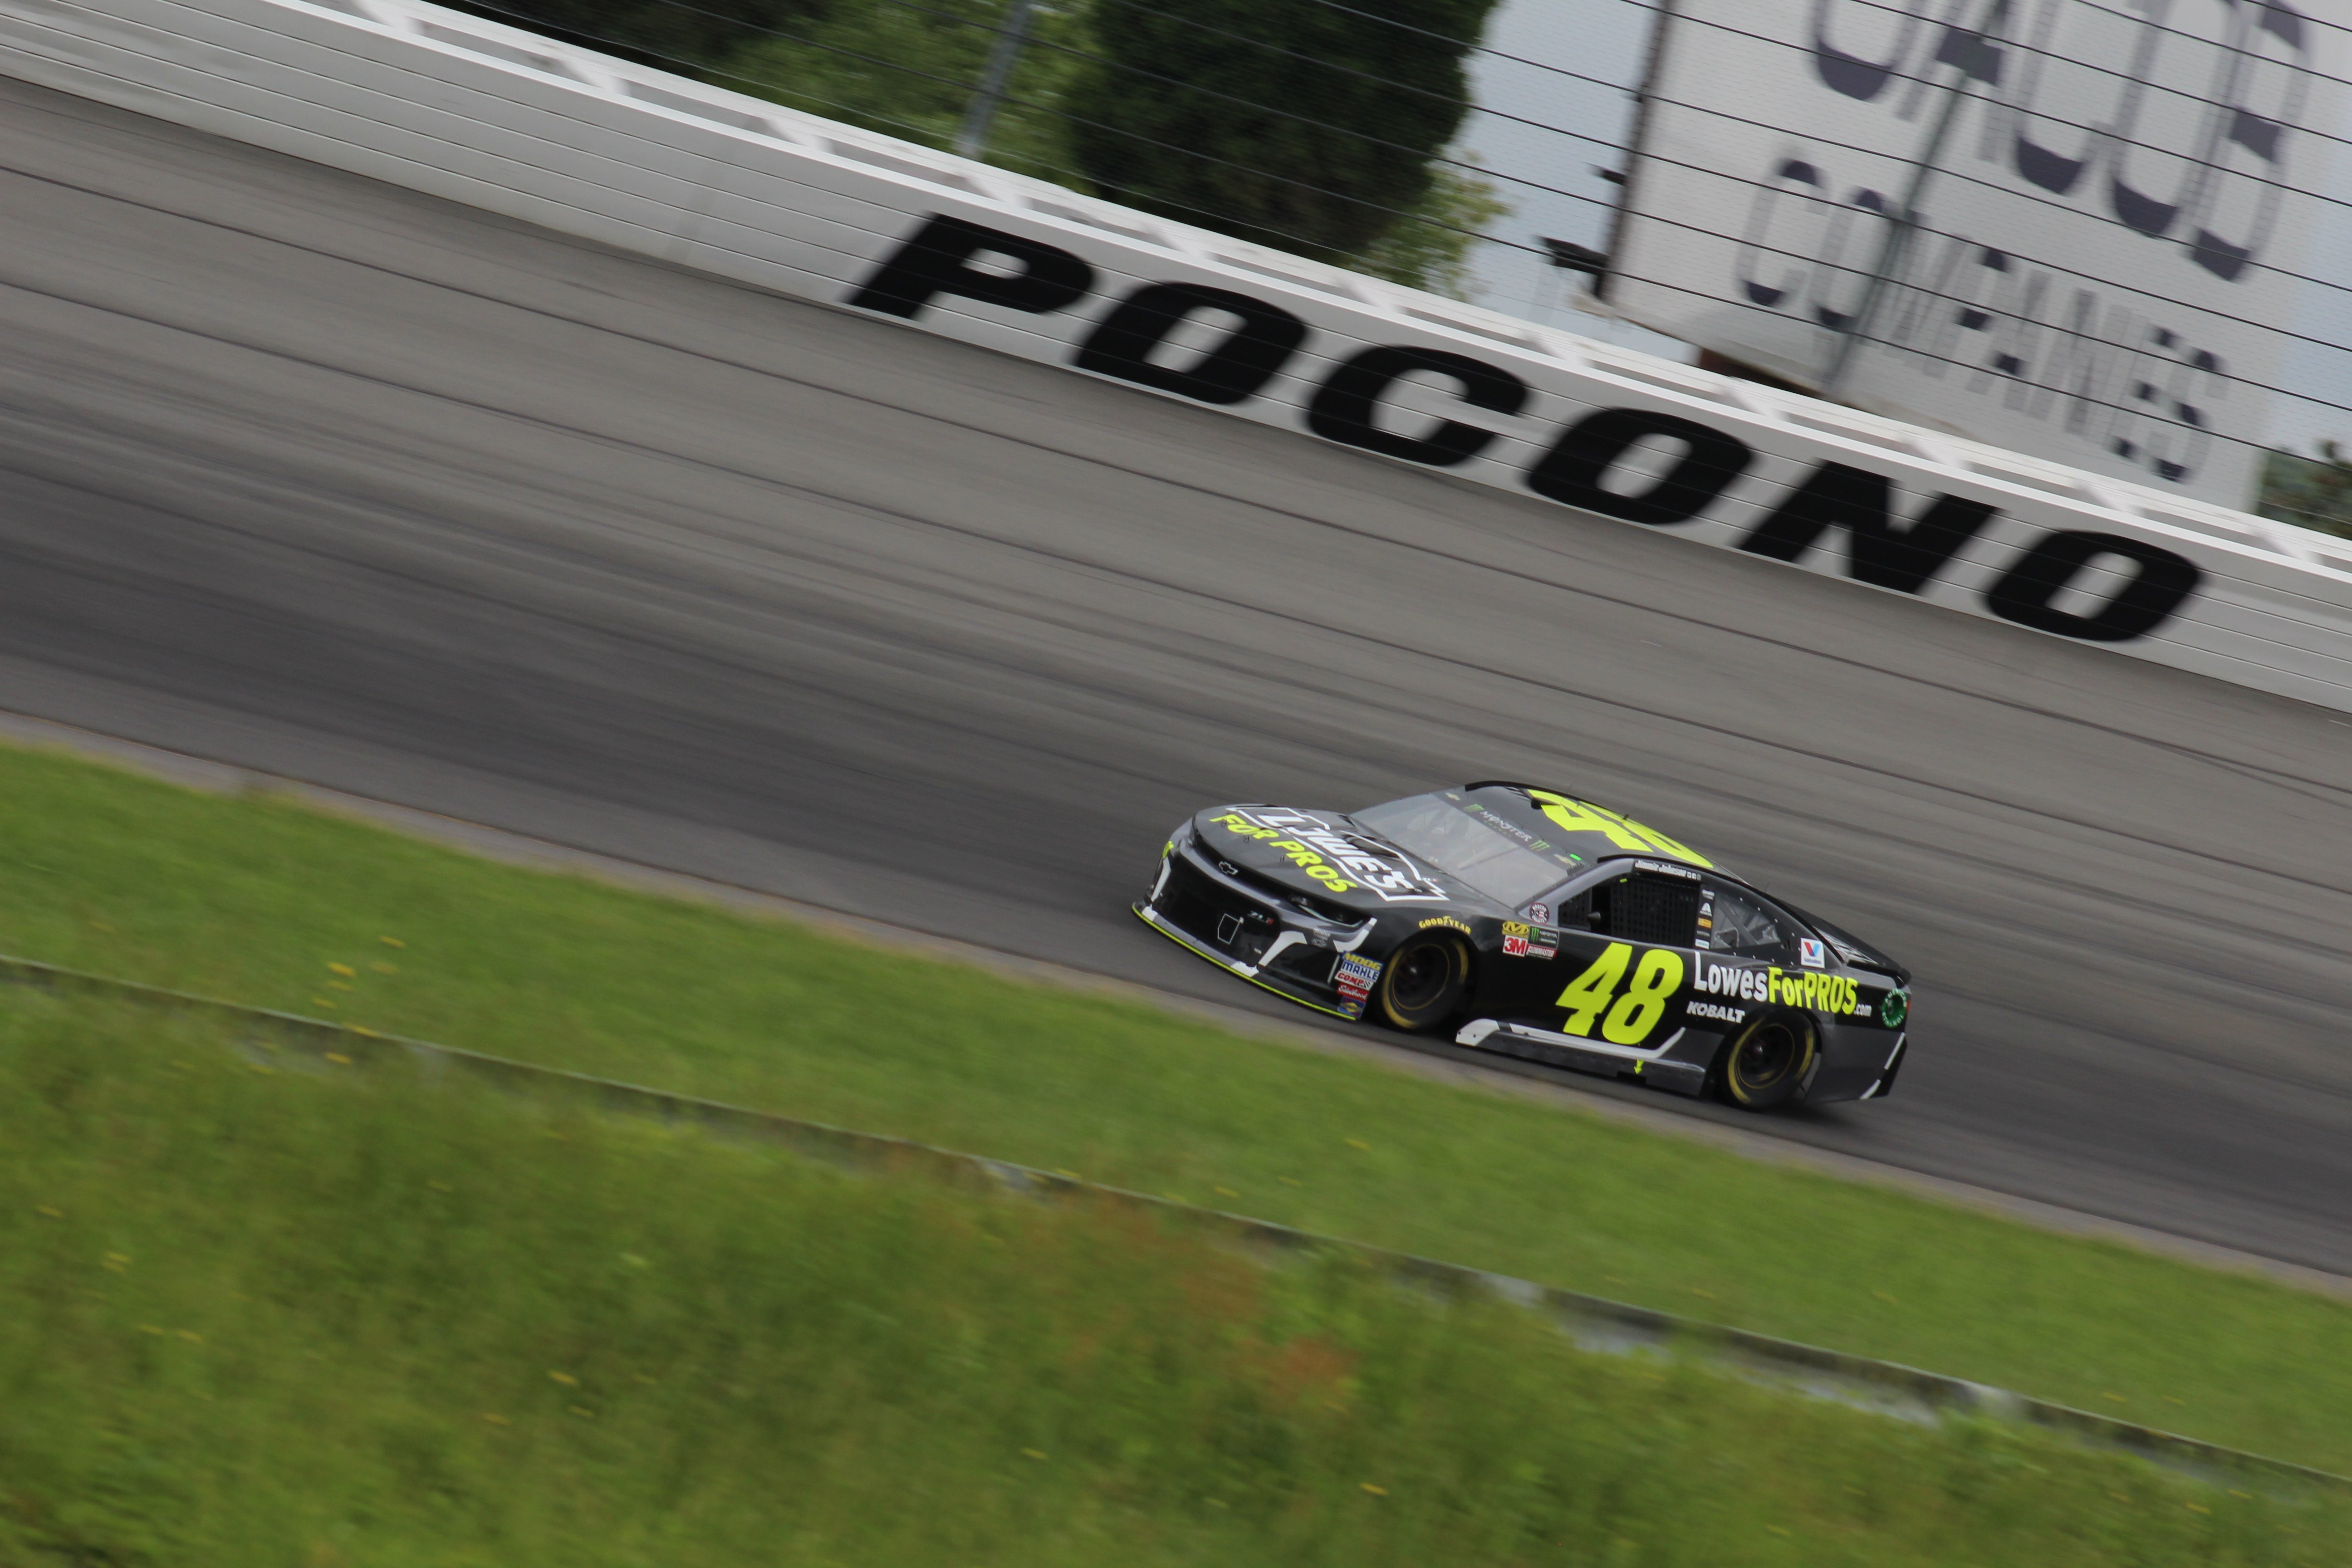 Jimmie Johnson races during the 2018 Pocono 400. (Tyler Head | The Racing Experts)